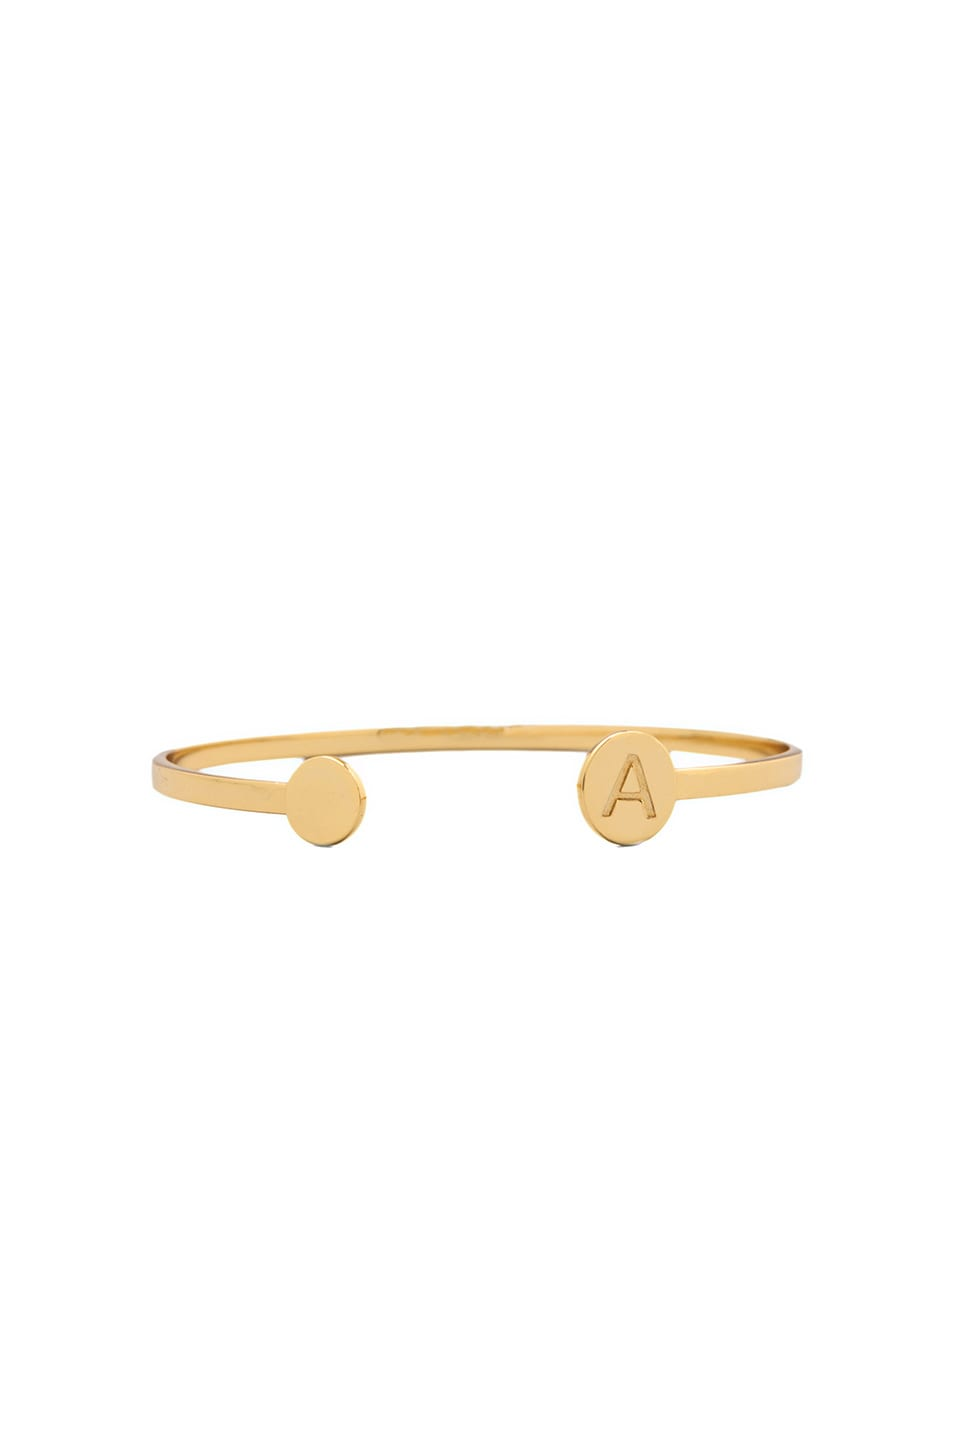 gorjana Alphabet Disc Cuff in 'A'